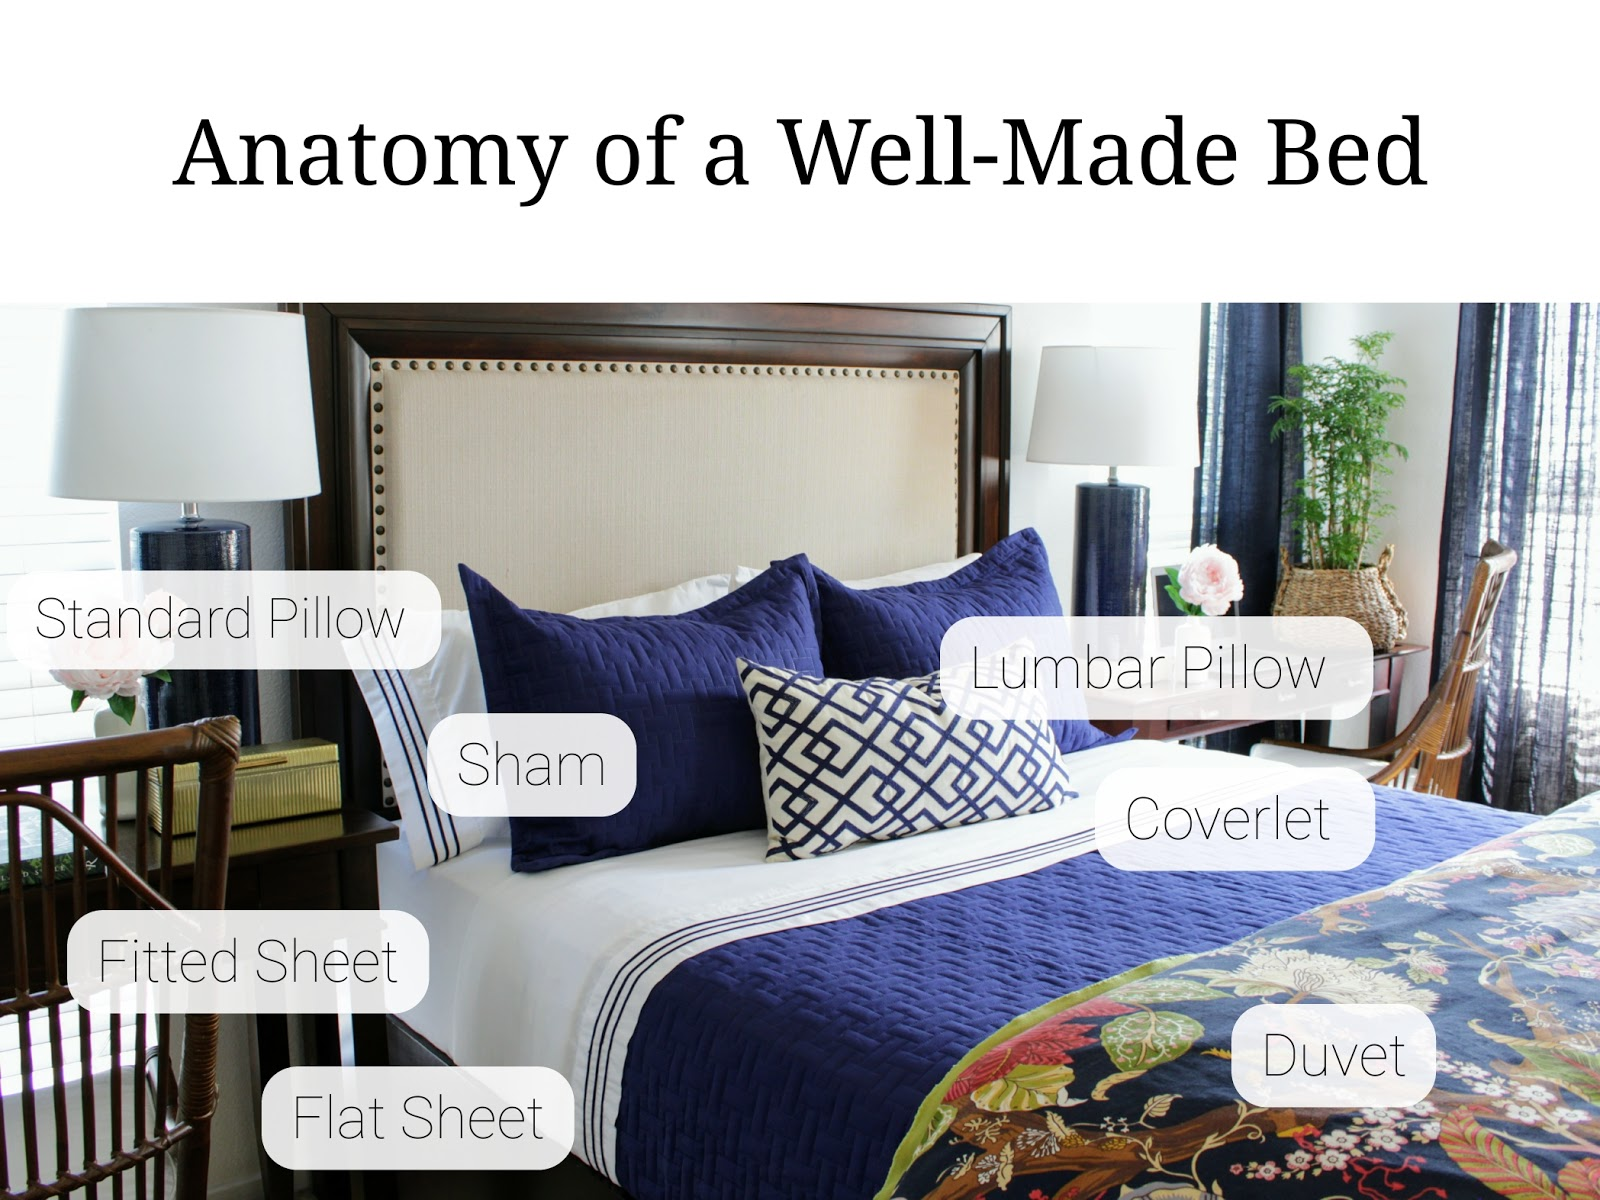 Oscar Bravo Home: The Anatomy of a Well-Made Bed